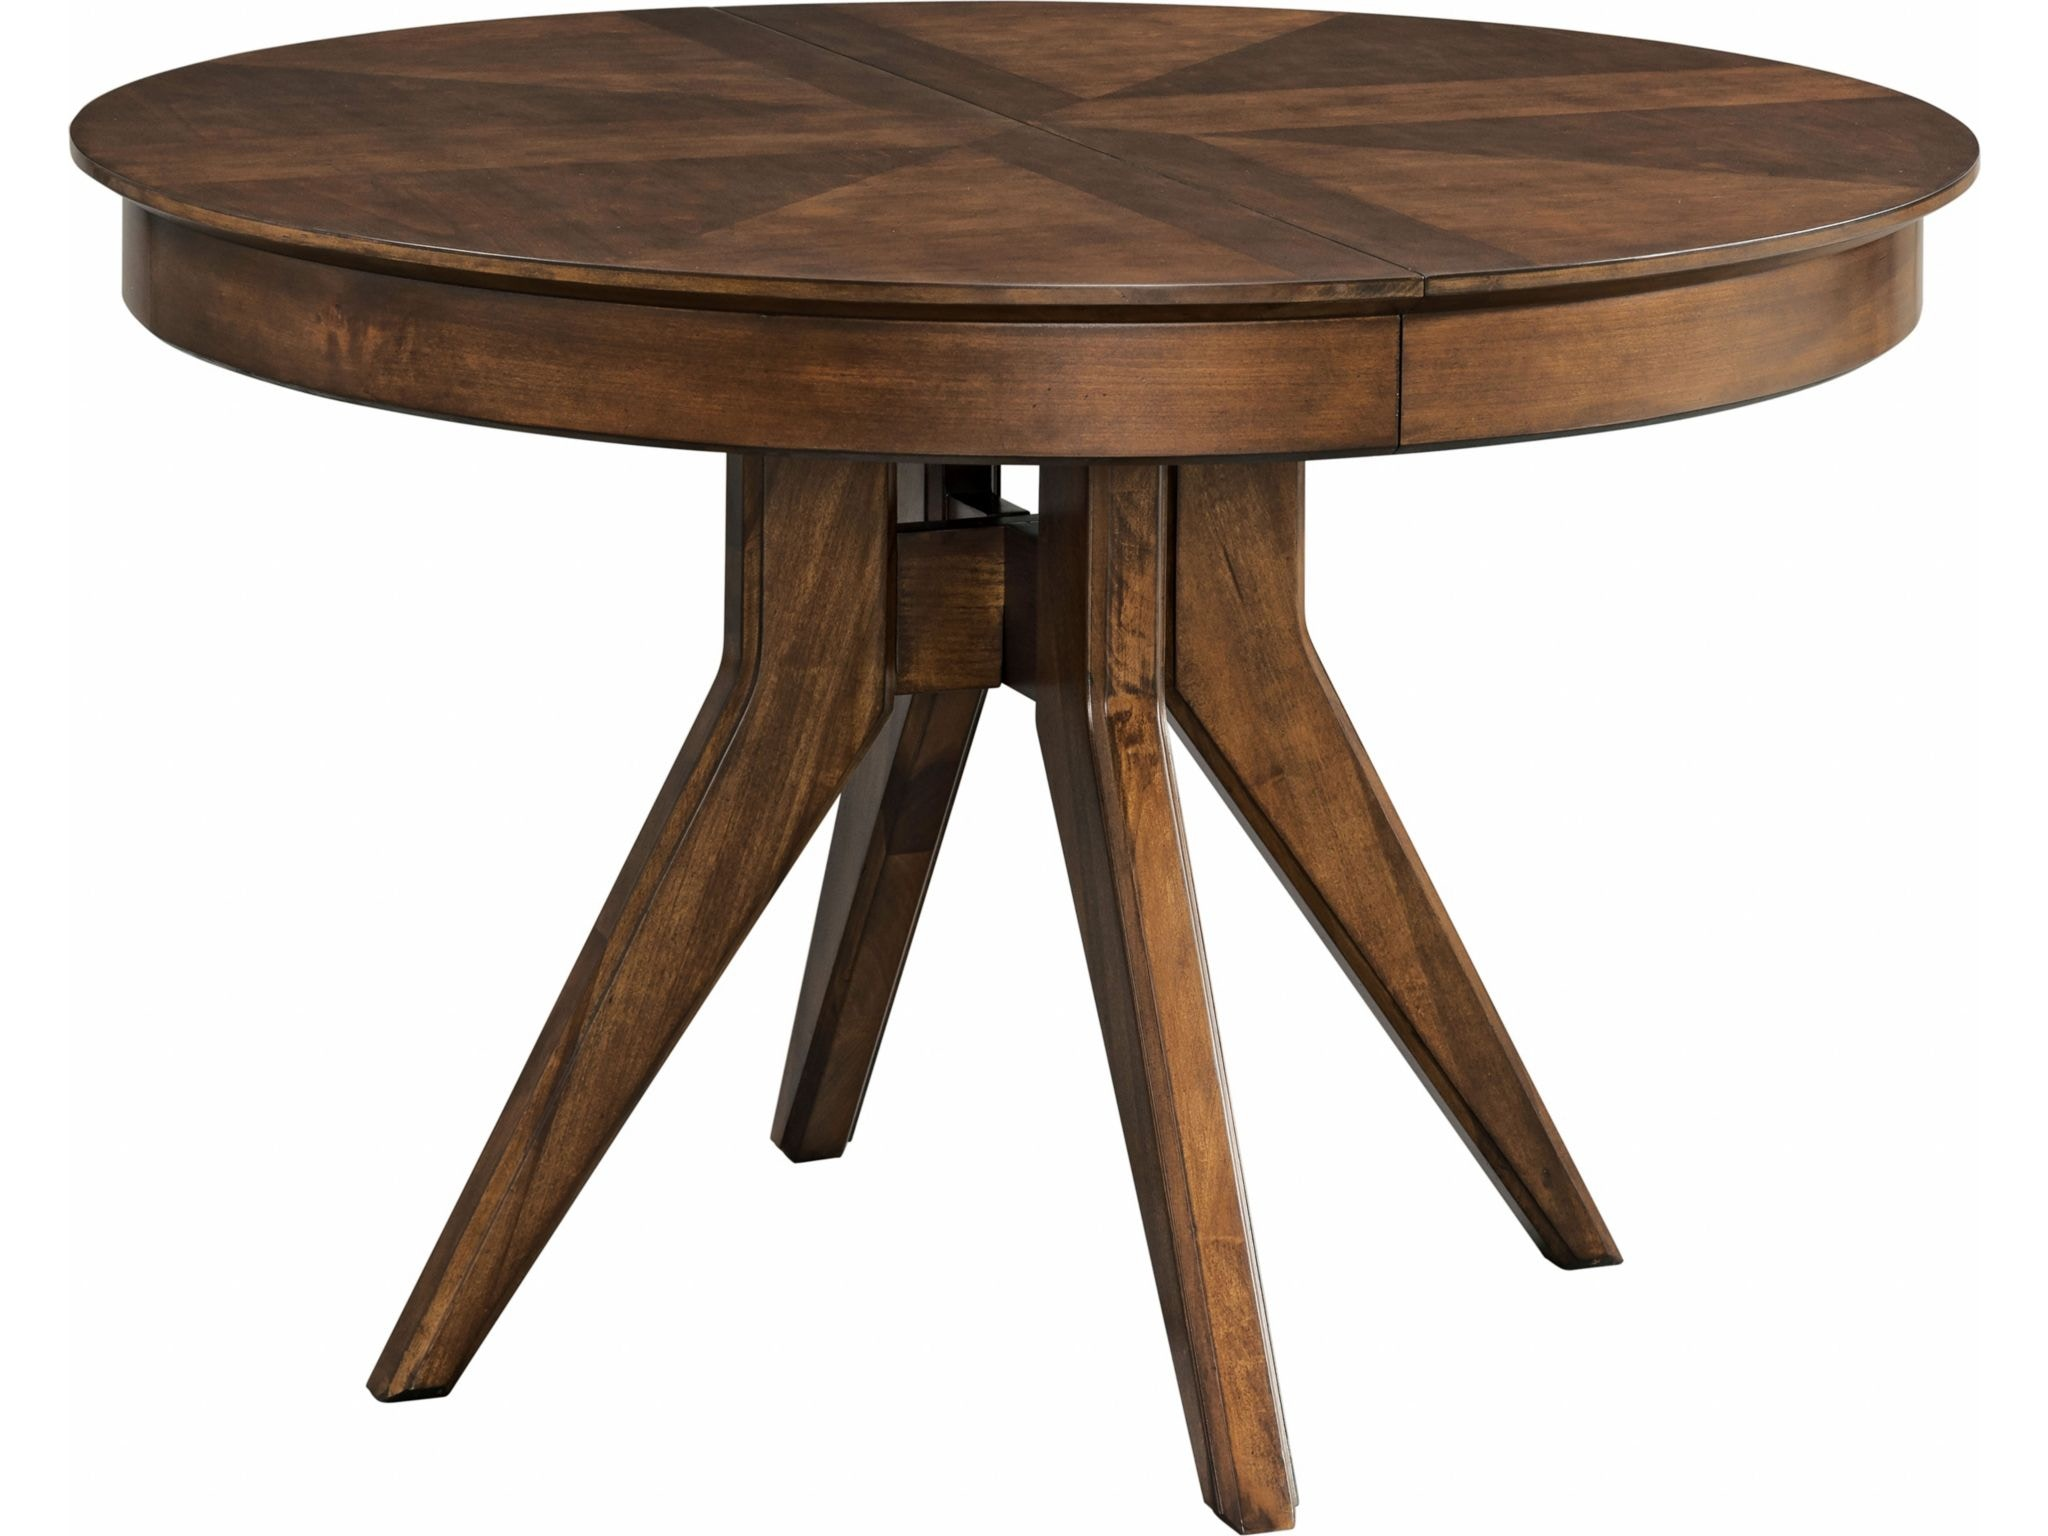 Thomasville Round Table 85221 731